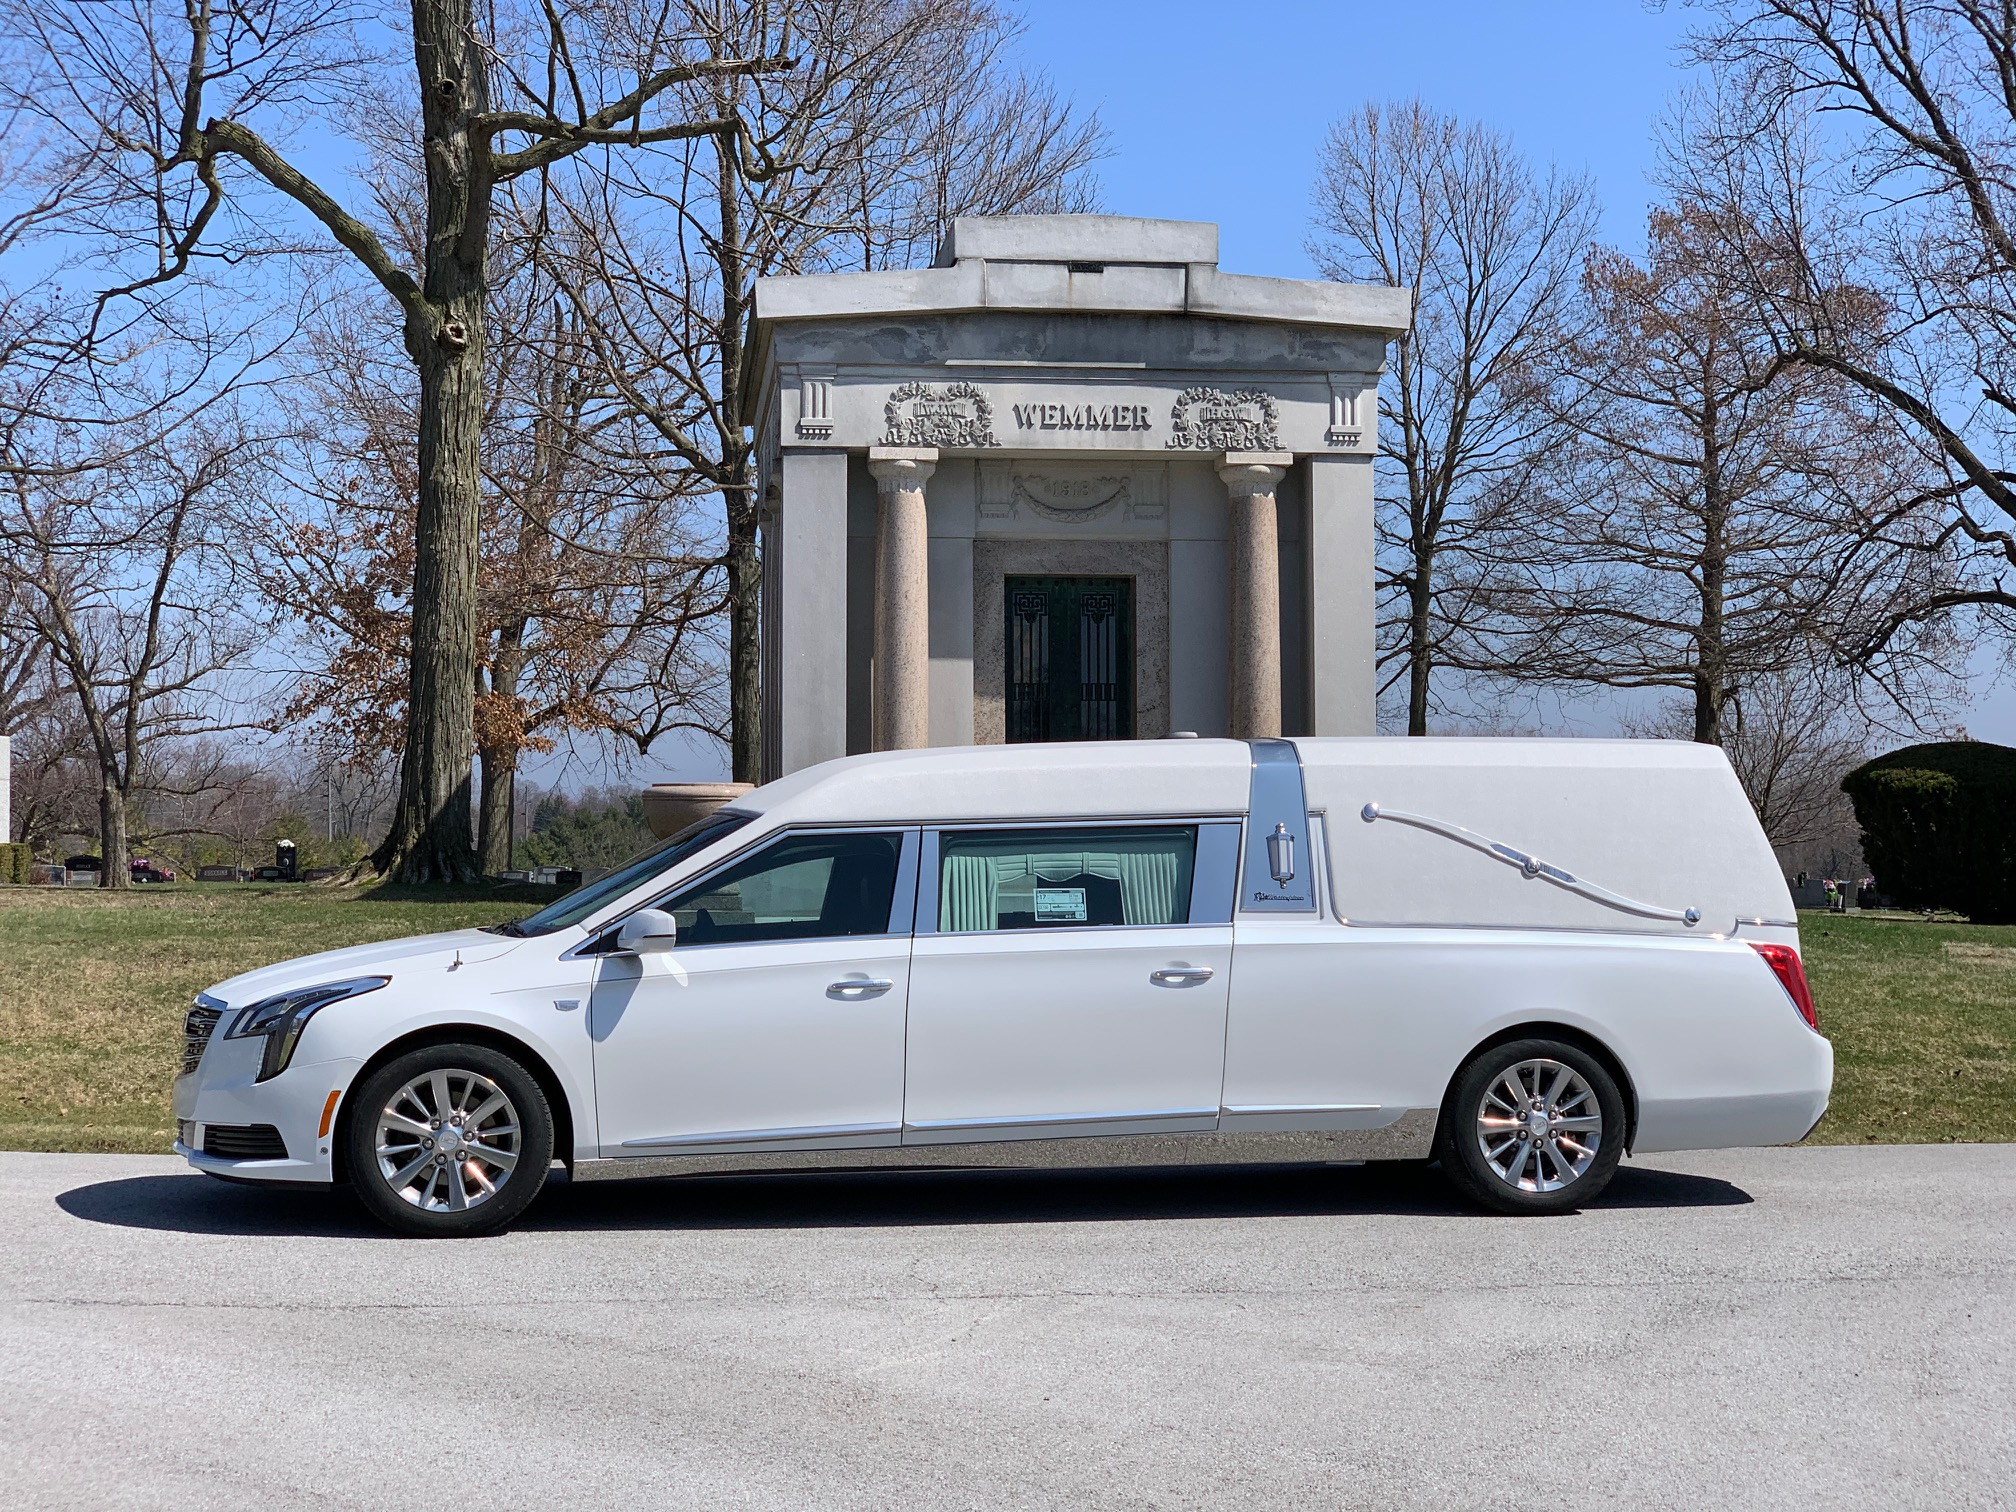 2019 Cadillac S&S Masterpiece Coach Hearse For Sale